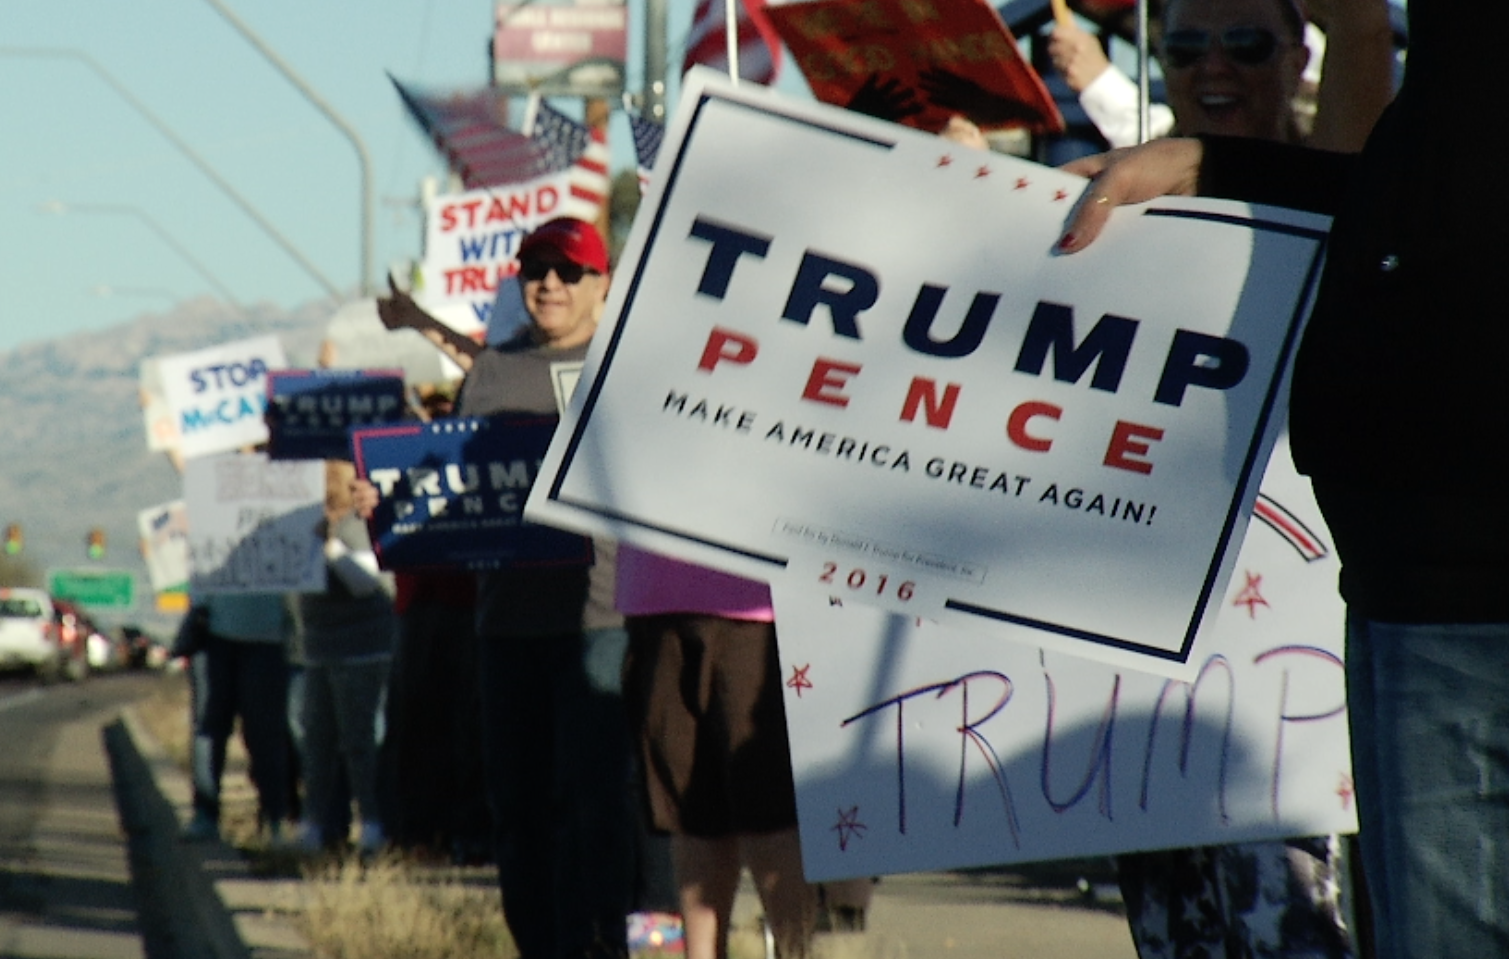 Supporters of President Trump rally along Tucson's Tanque Verde Road, Feb. 22, 2017.